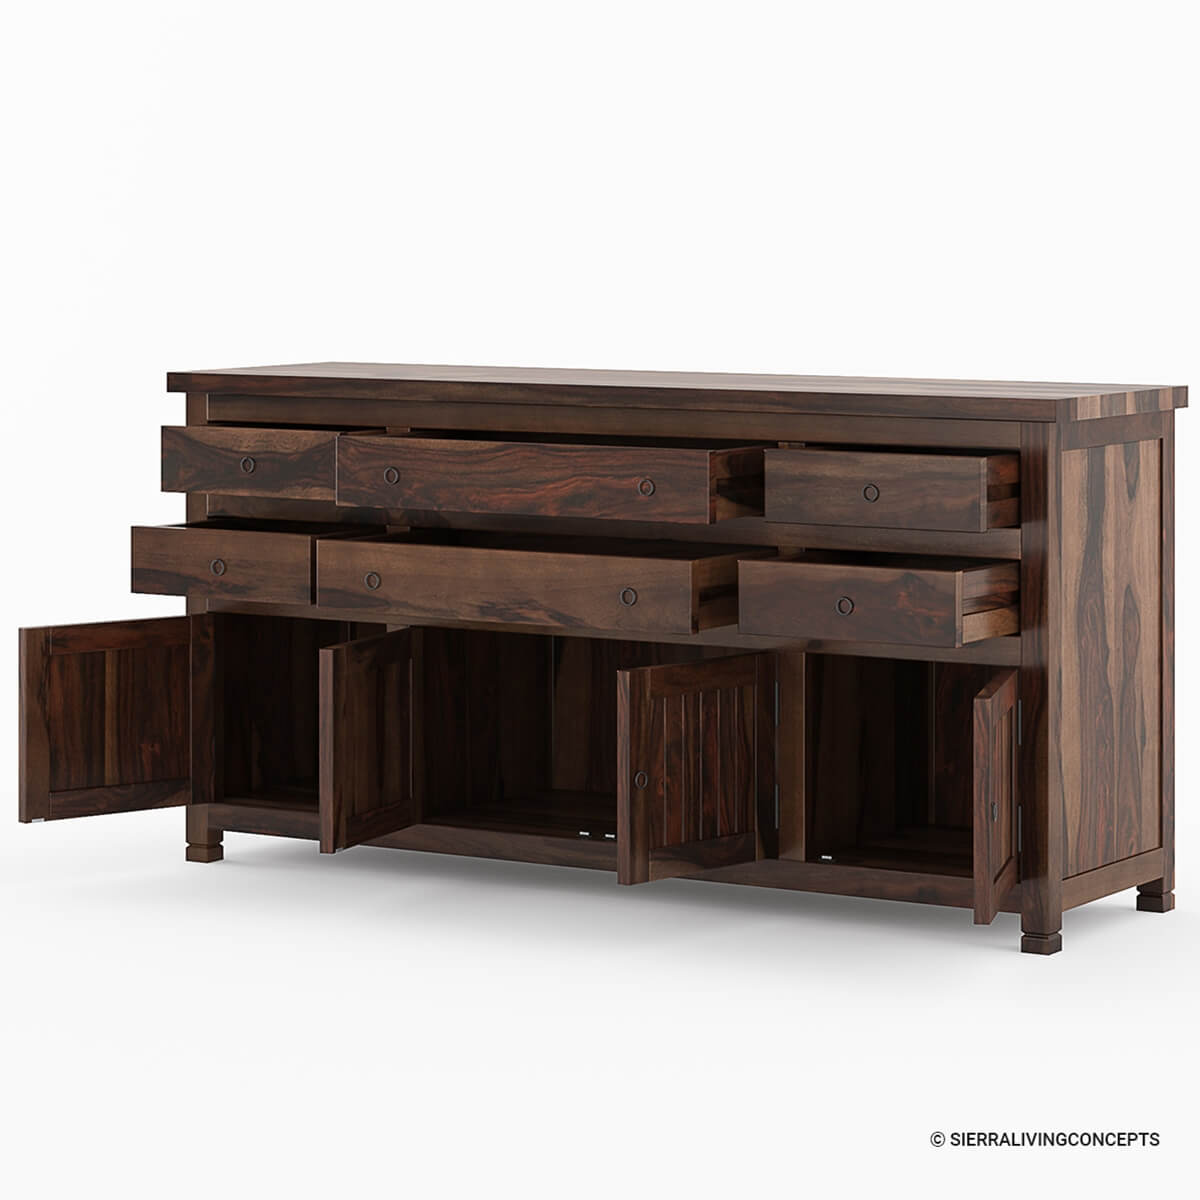 Unfinished Wood Buffets Wooden Sofa Chair Bookshelves